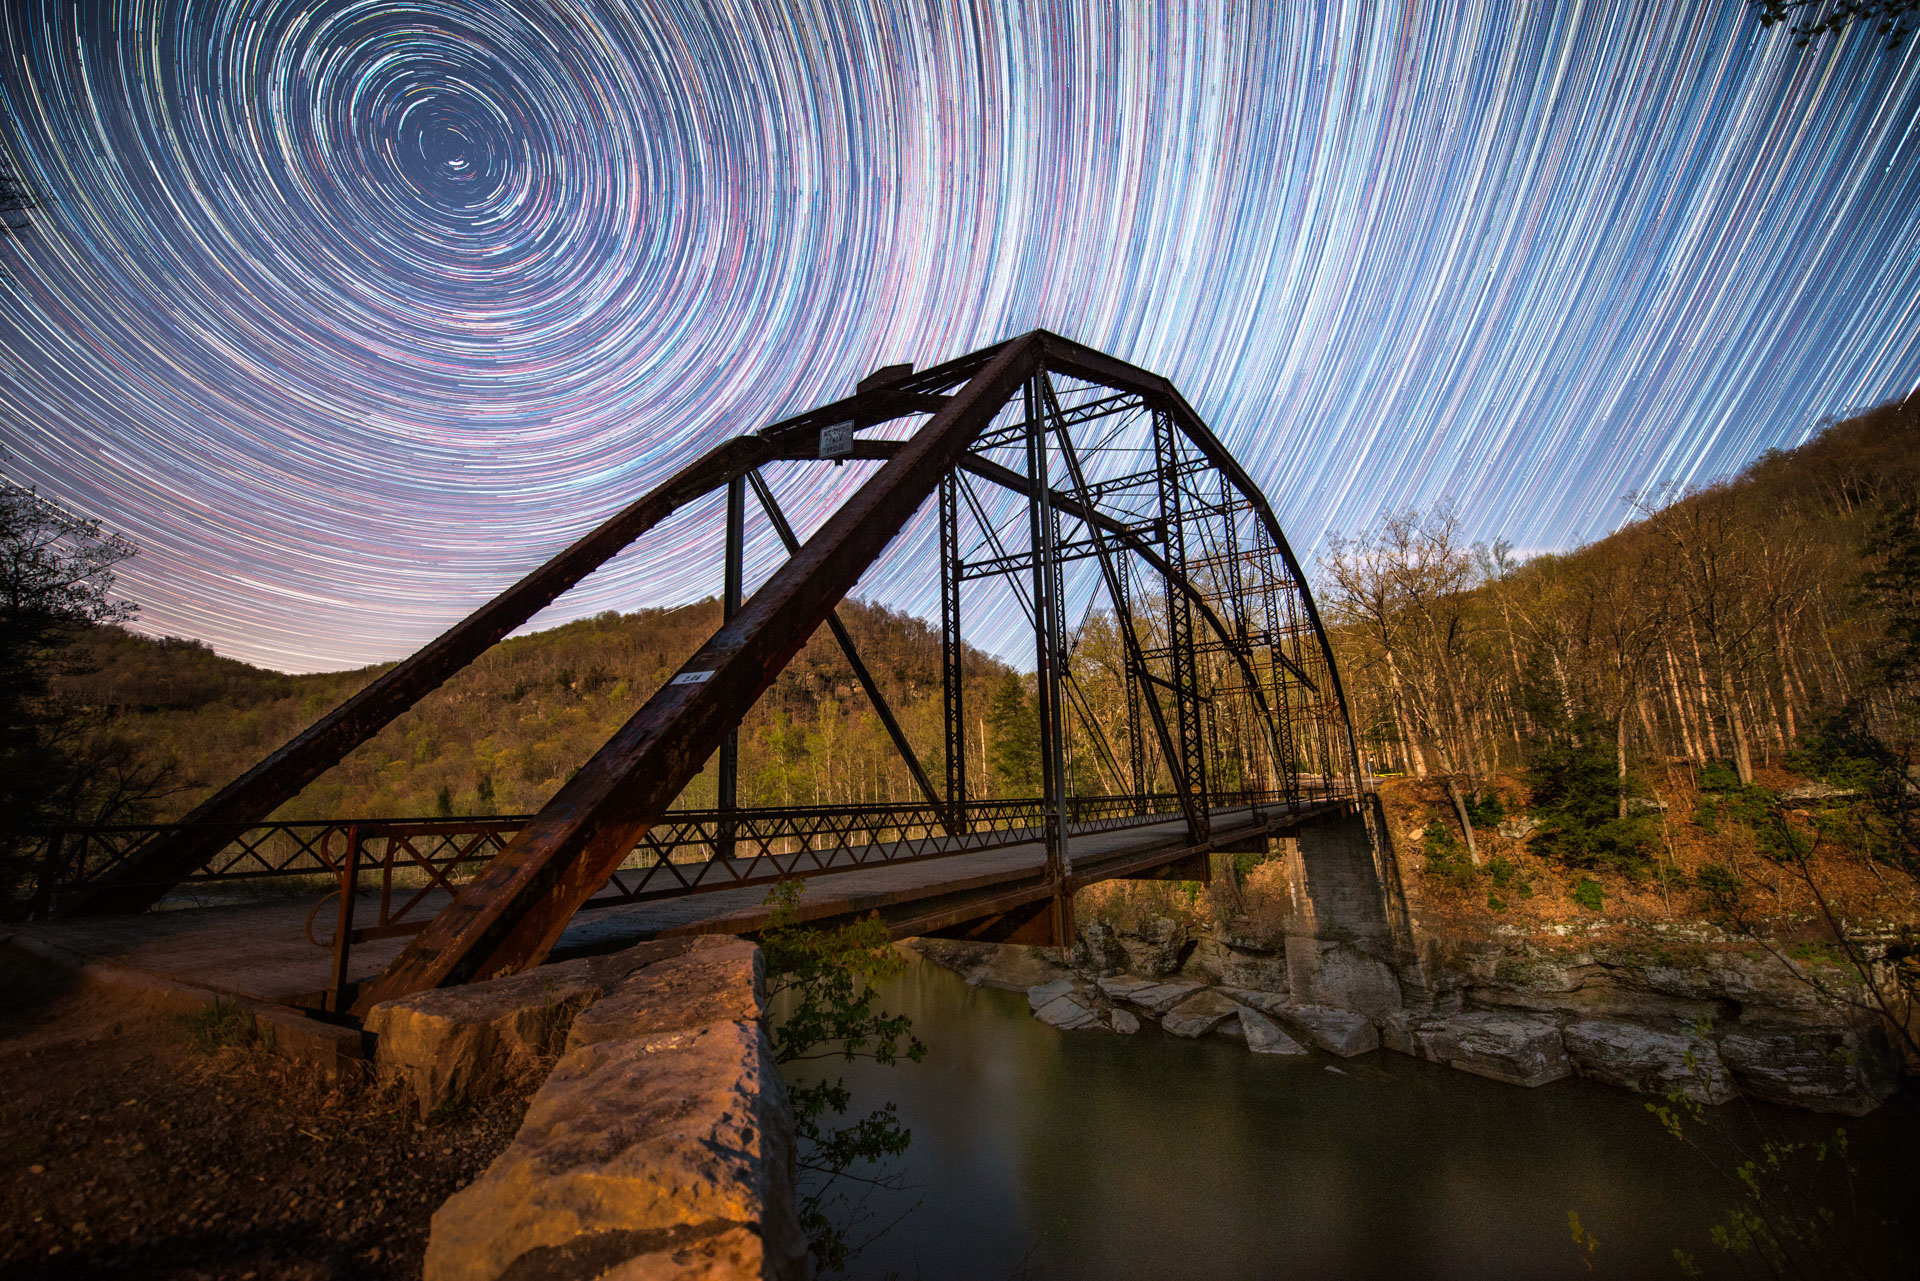 Allegheny Trail, Cheat River, Friends of the Cheat, Gabe DeWitt, Night Photography, Places, Star trails, Stars, TNC, The Nature Conservancy, The Nature Conservancy Magazine, West Virginia, night, photo by Gabe DeWitt, spring